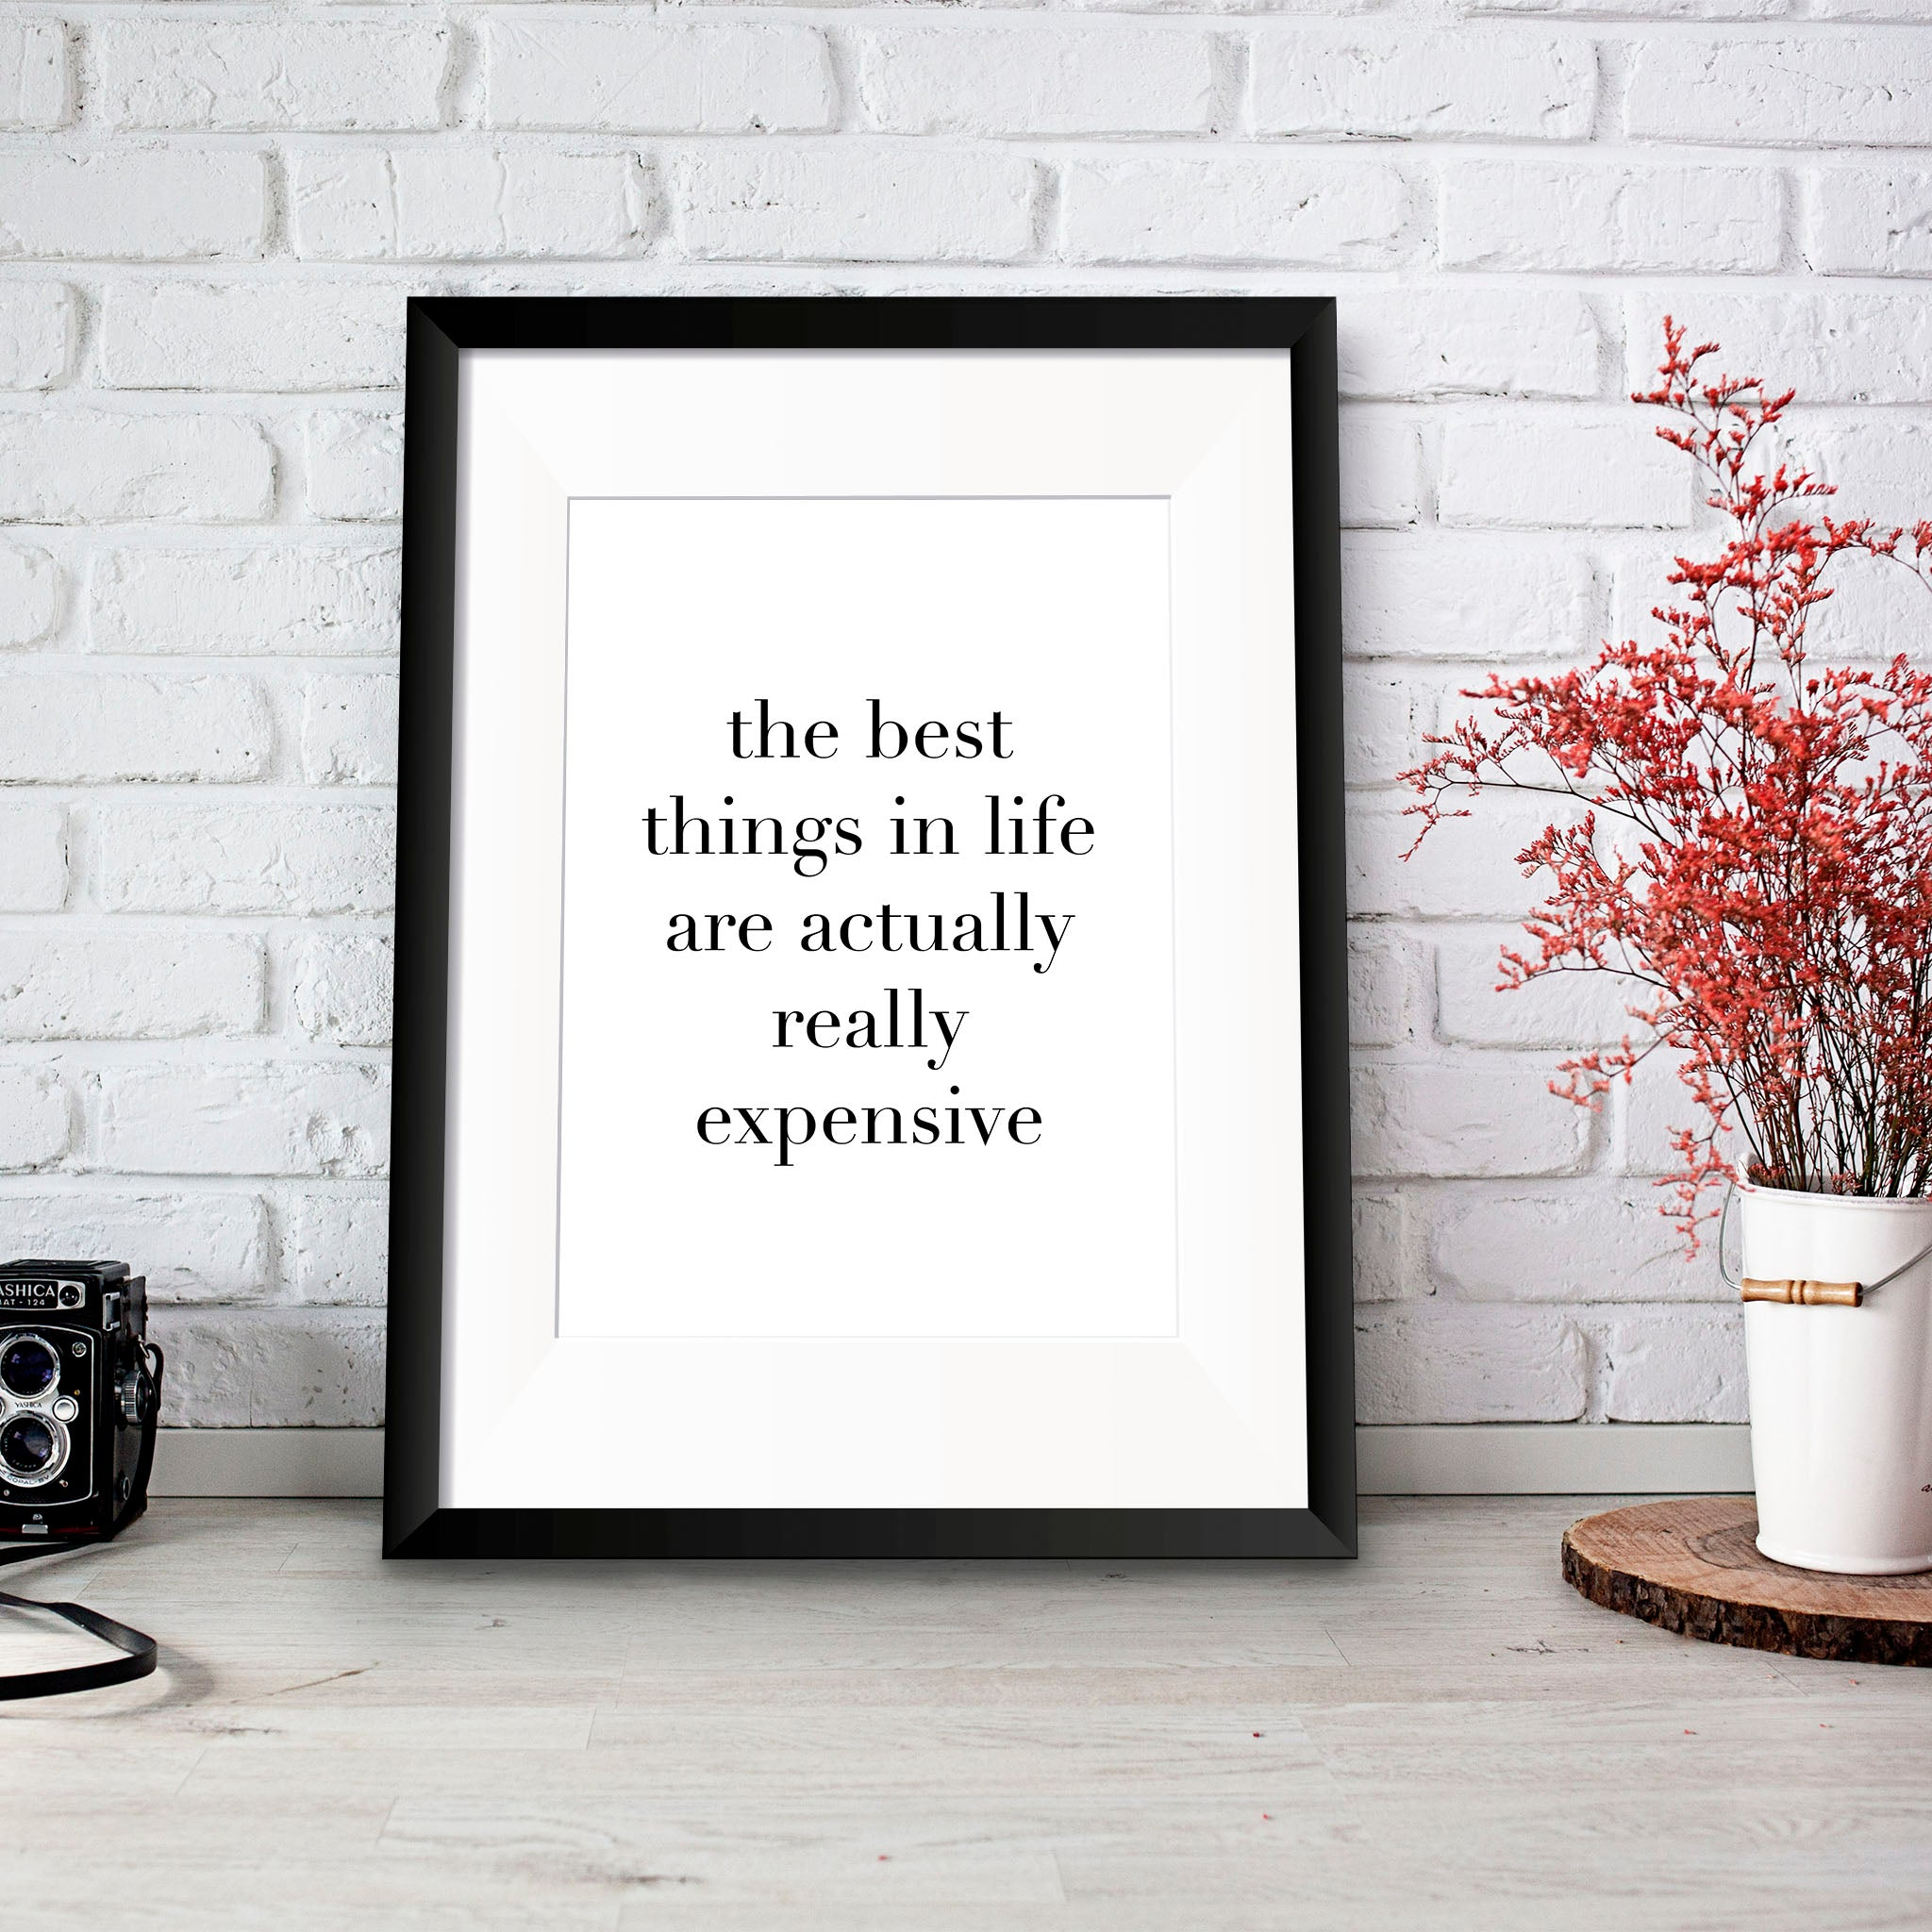 Best Things in Life Print - Oregano Designs